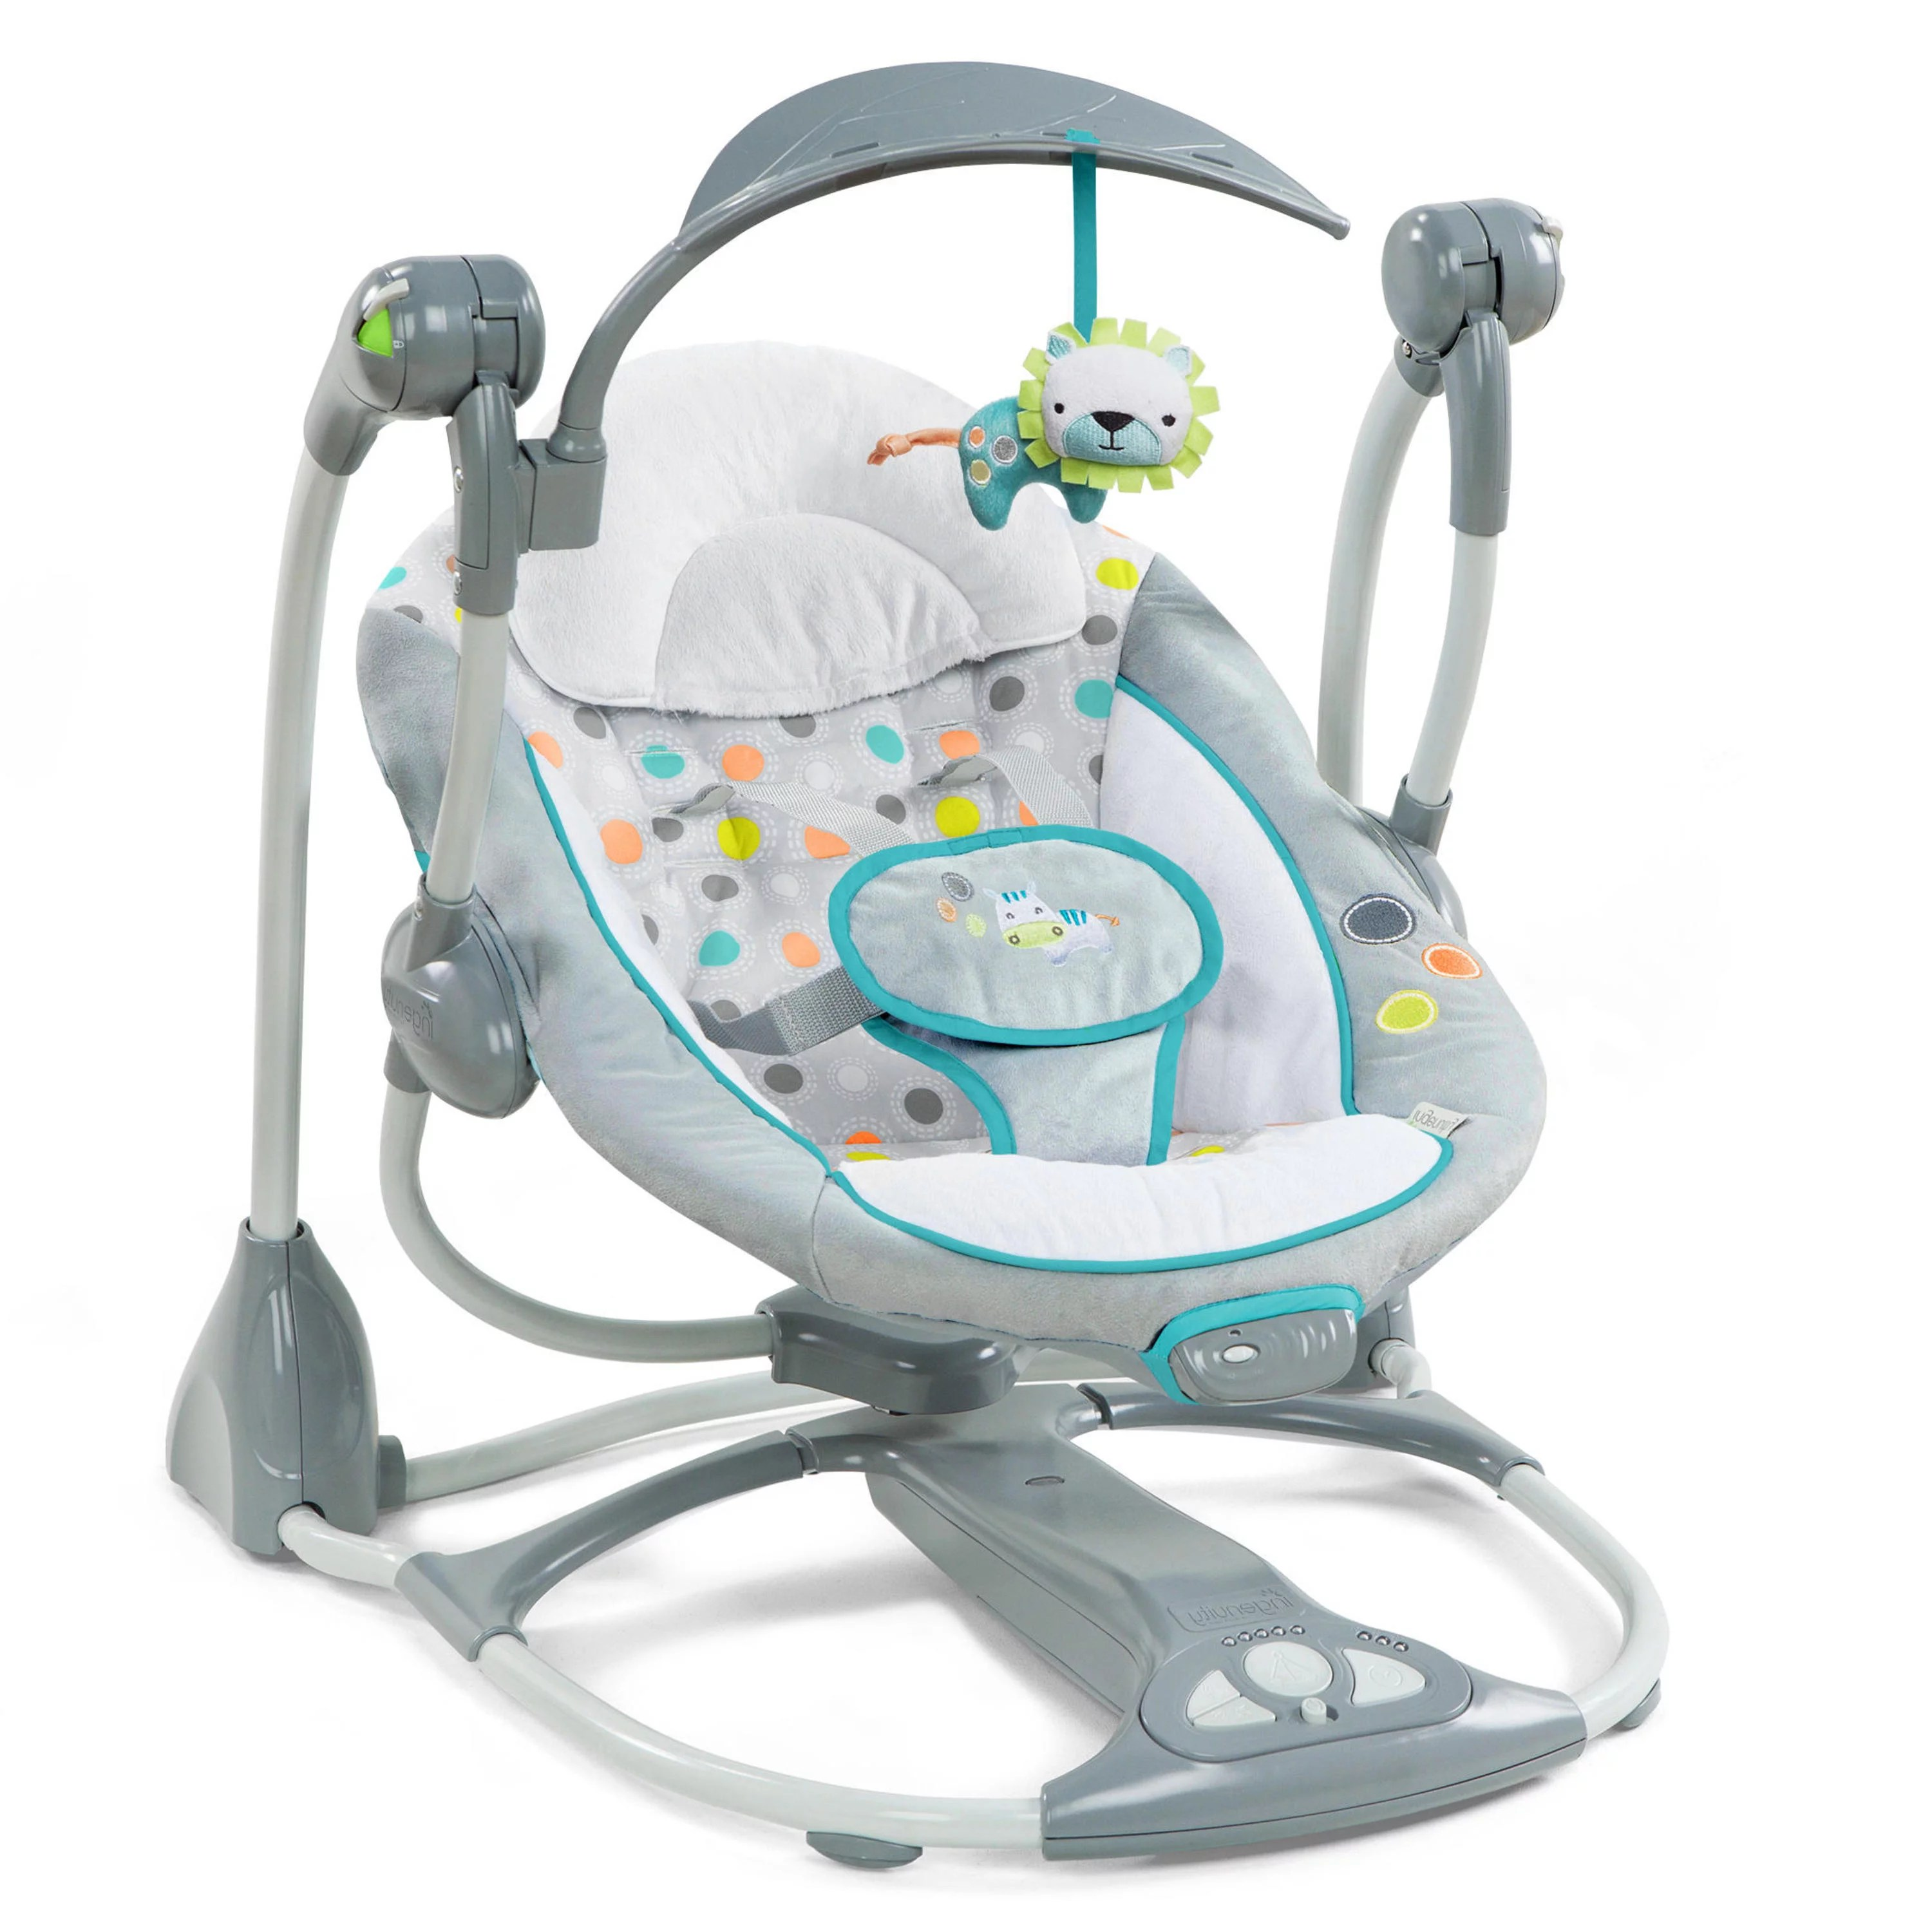 bouncy chair target chairs for sleeping upright ingenuity ridgedale collection playard and swing value set